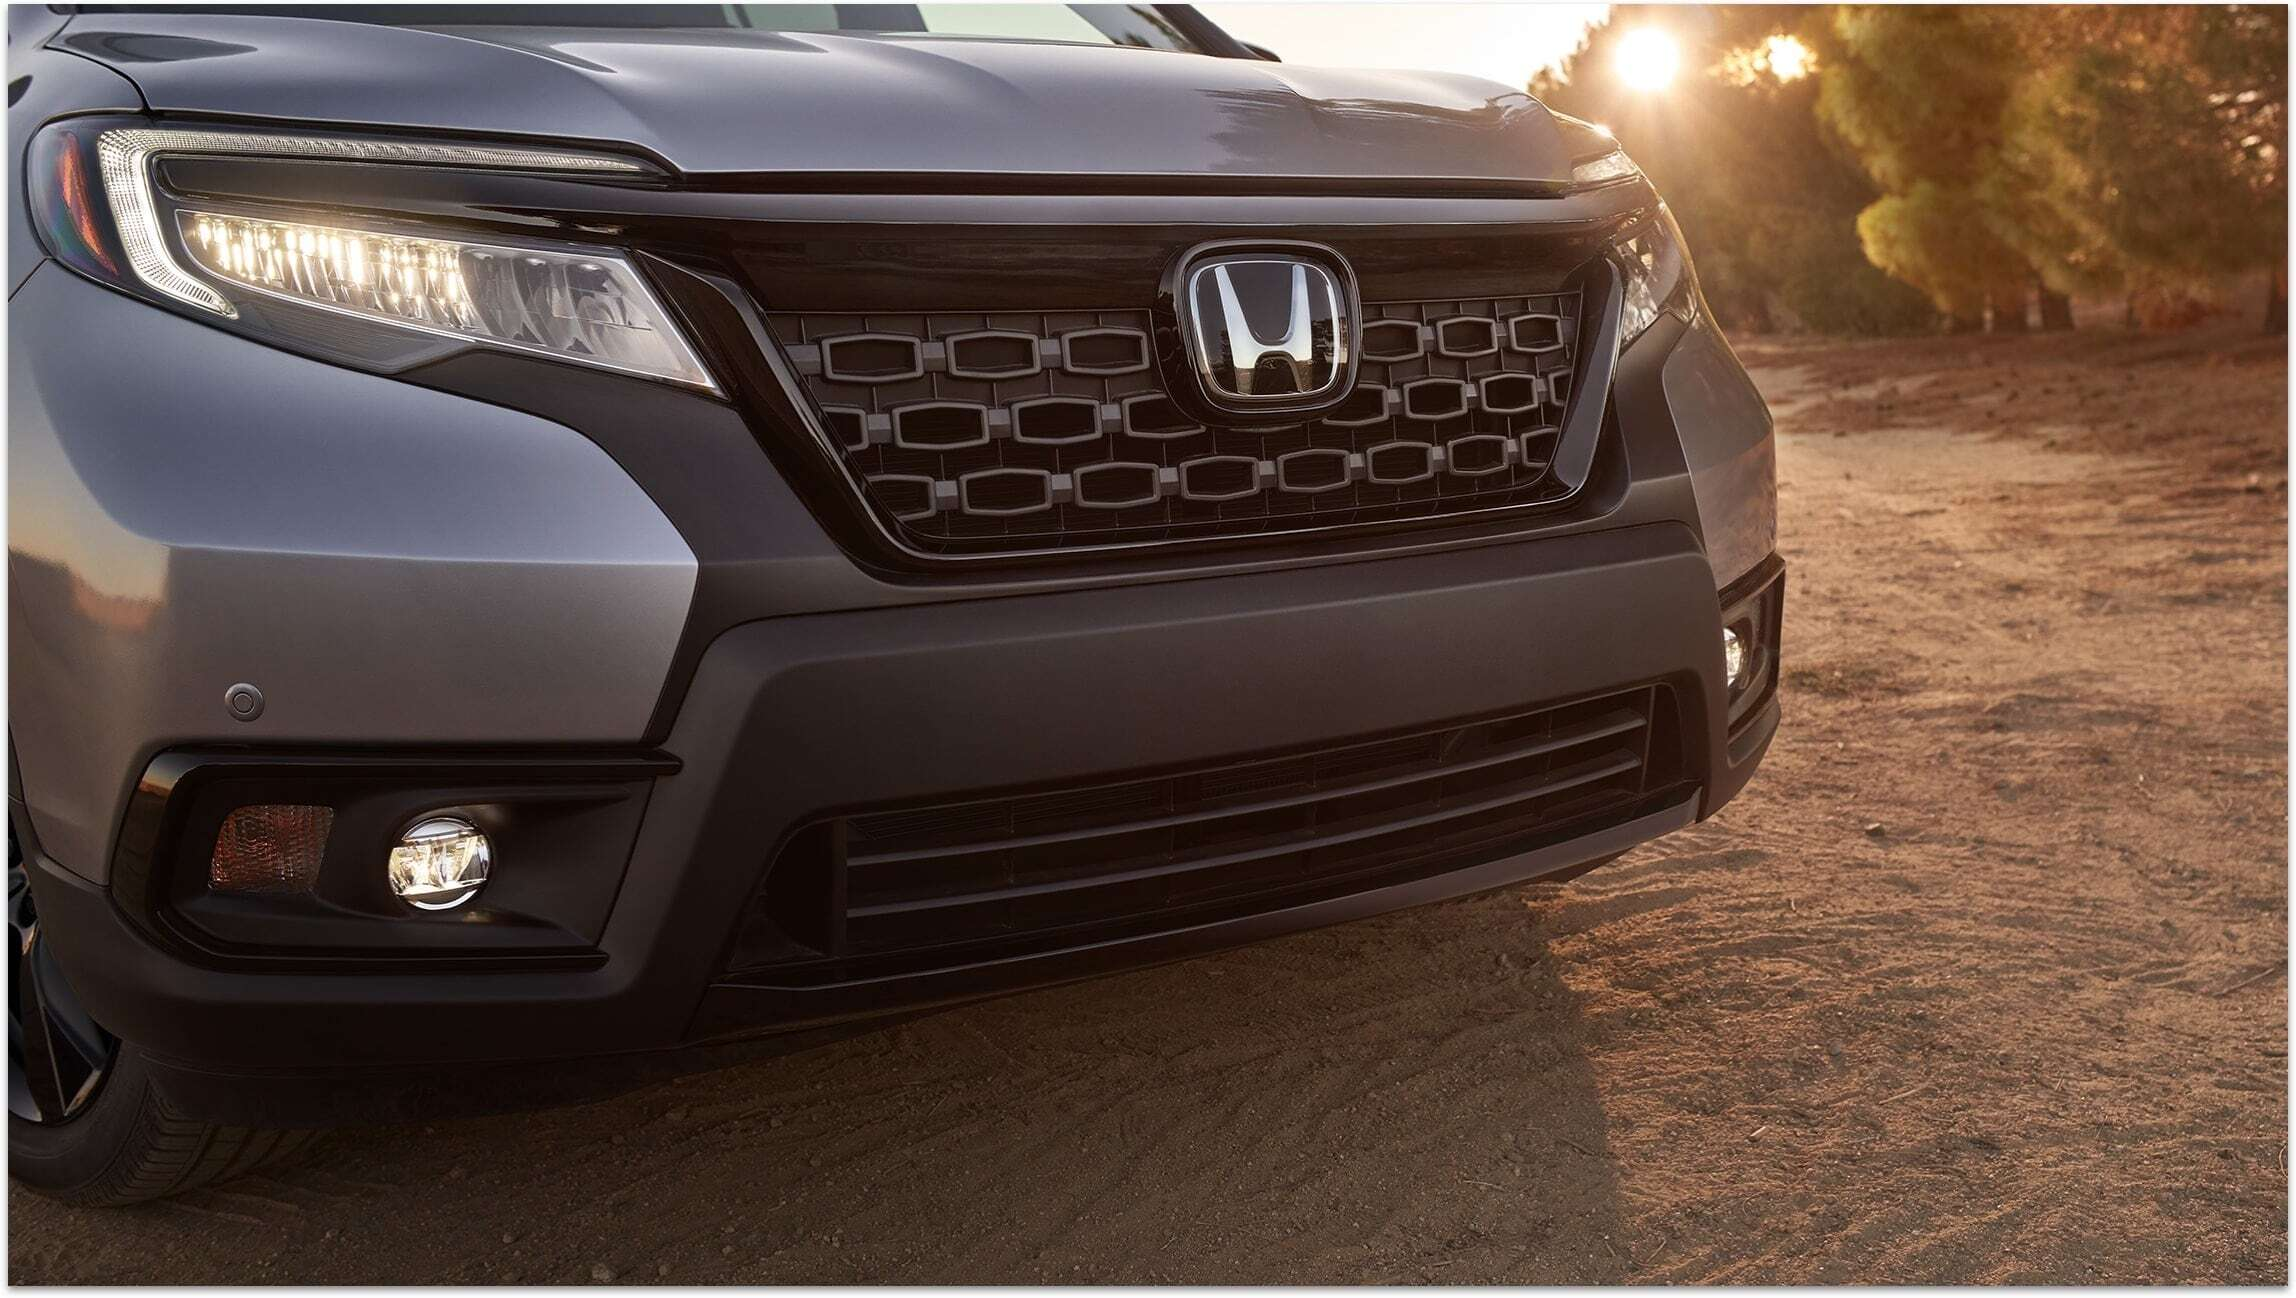 Honda Passport's LED Fog Lights